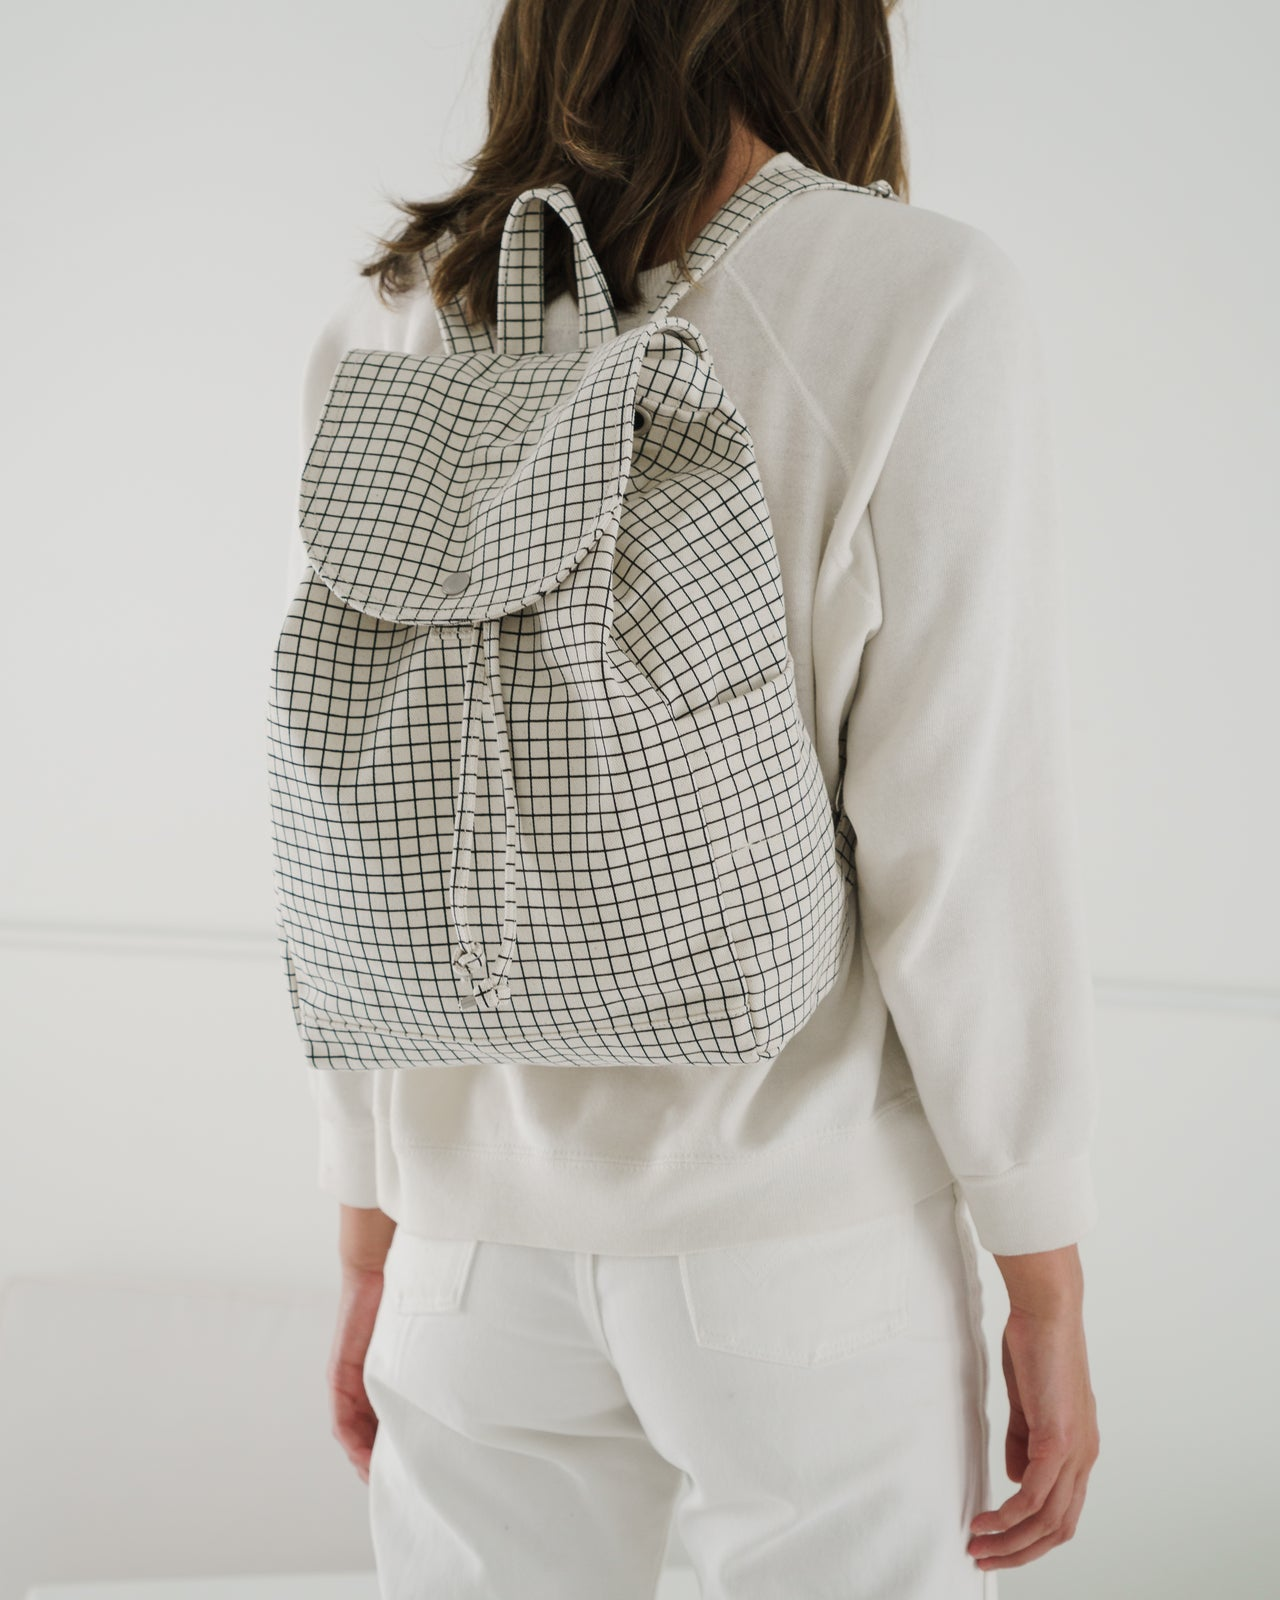 Drawstring Backpack - Natural Grid